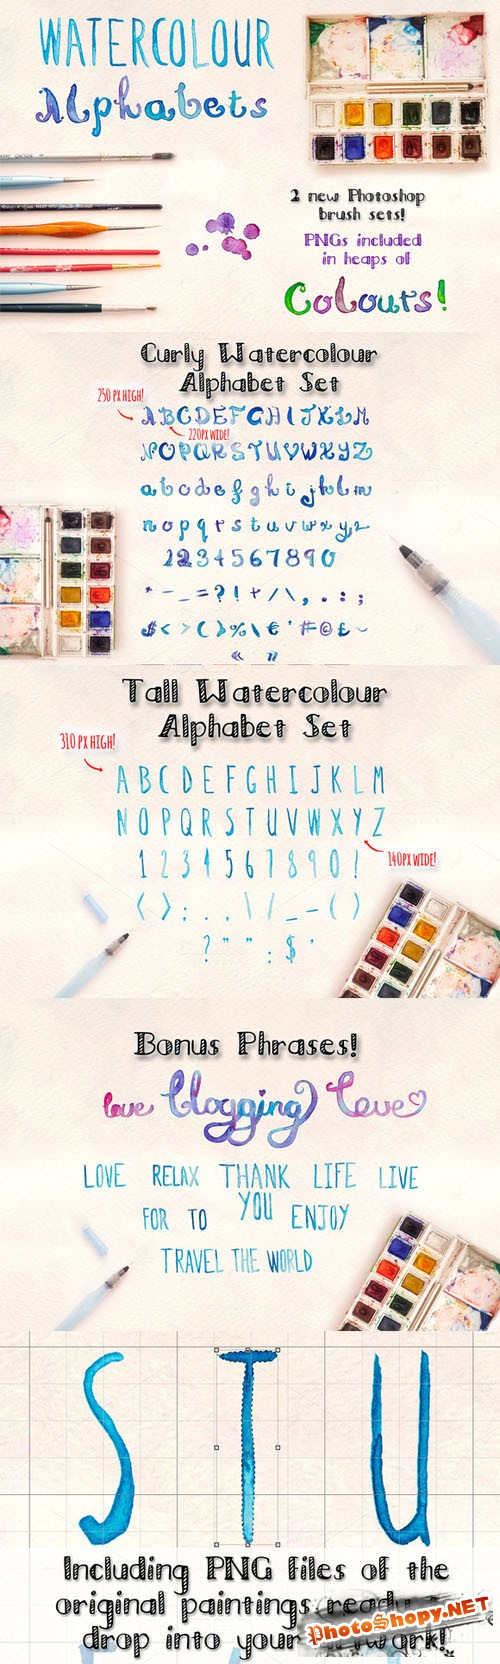 2 Watercolor Alphabet Brush Sets - CM 193392